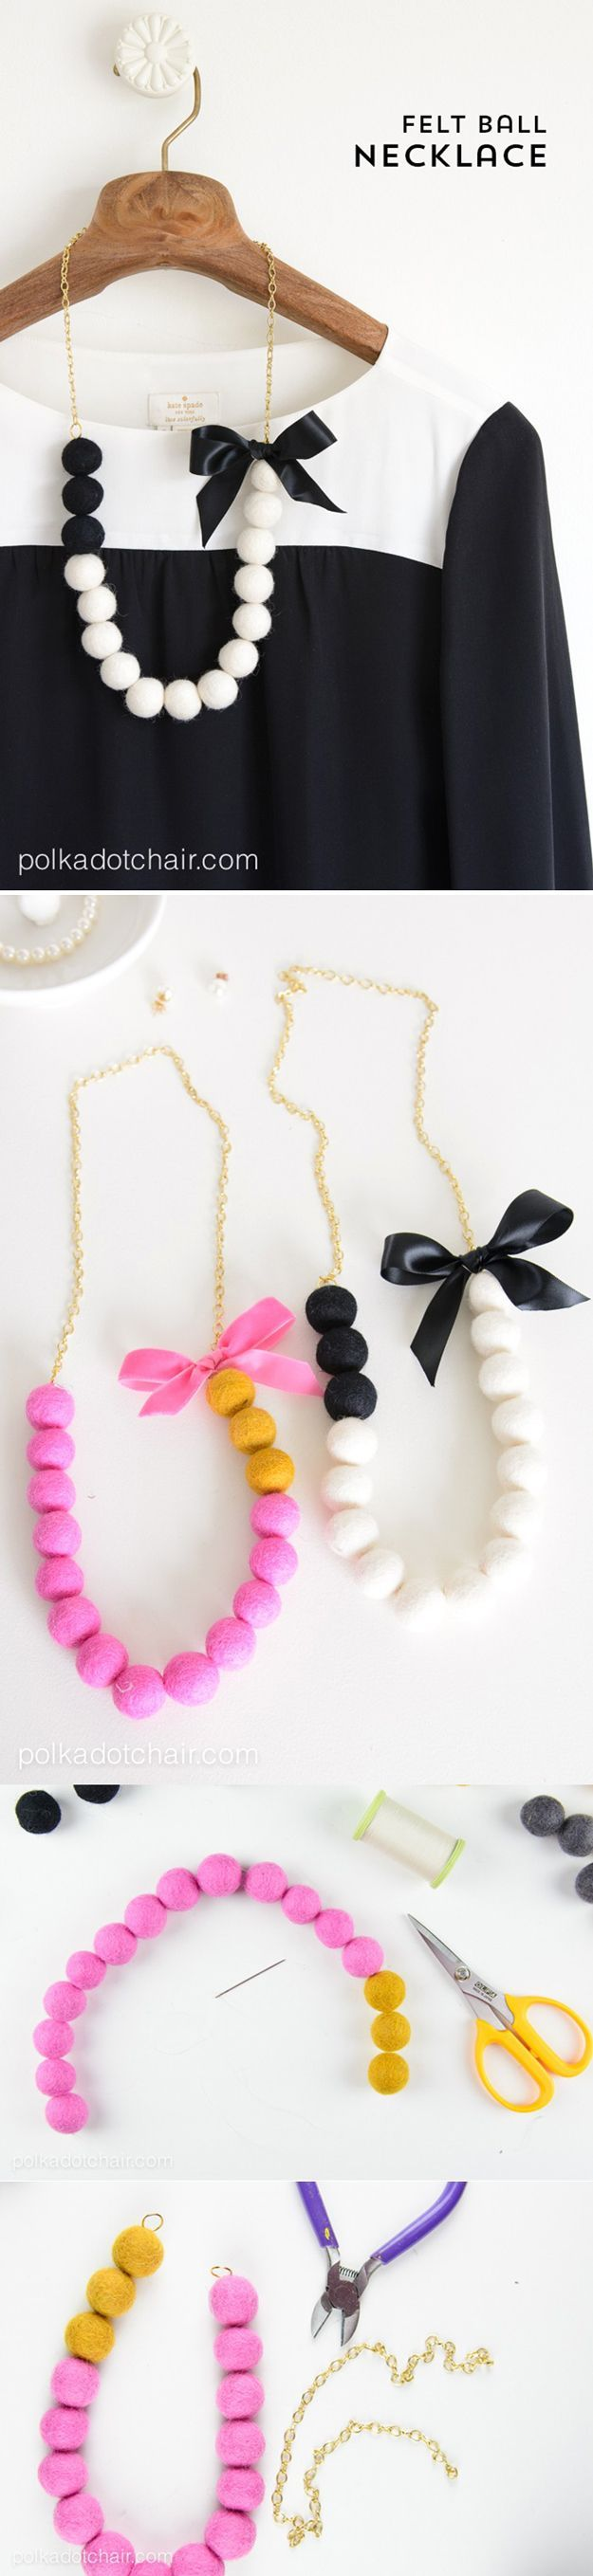 DIY Felt Ball Necklace Tutorial by DIY Ready at http://diyready.com/diy-projects-with-felt-balls/ ‎